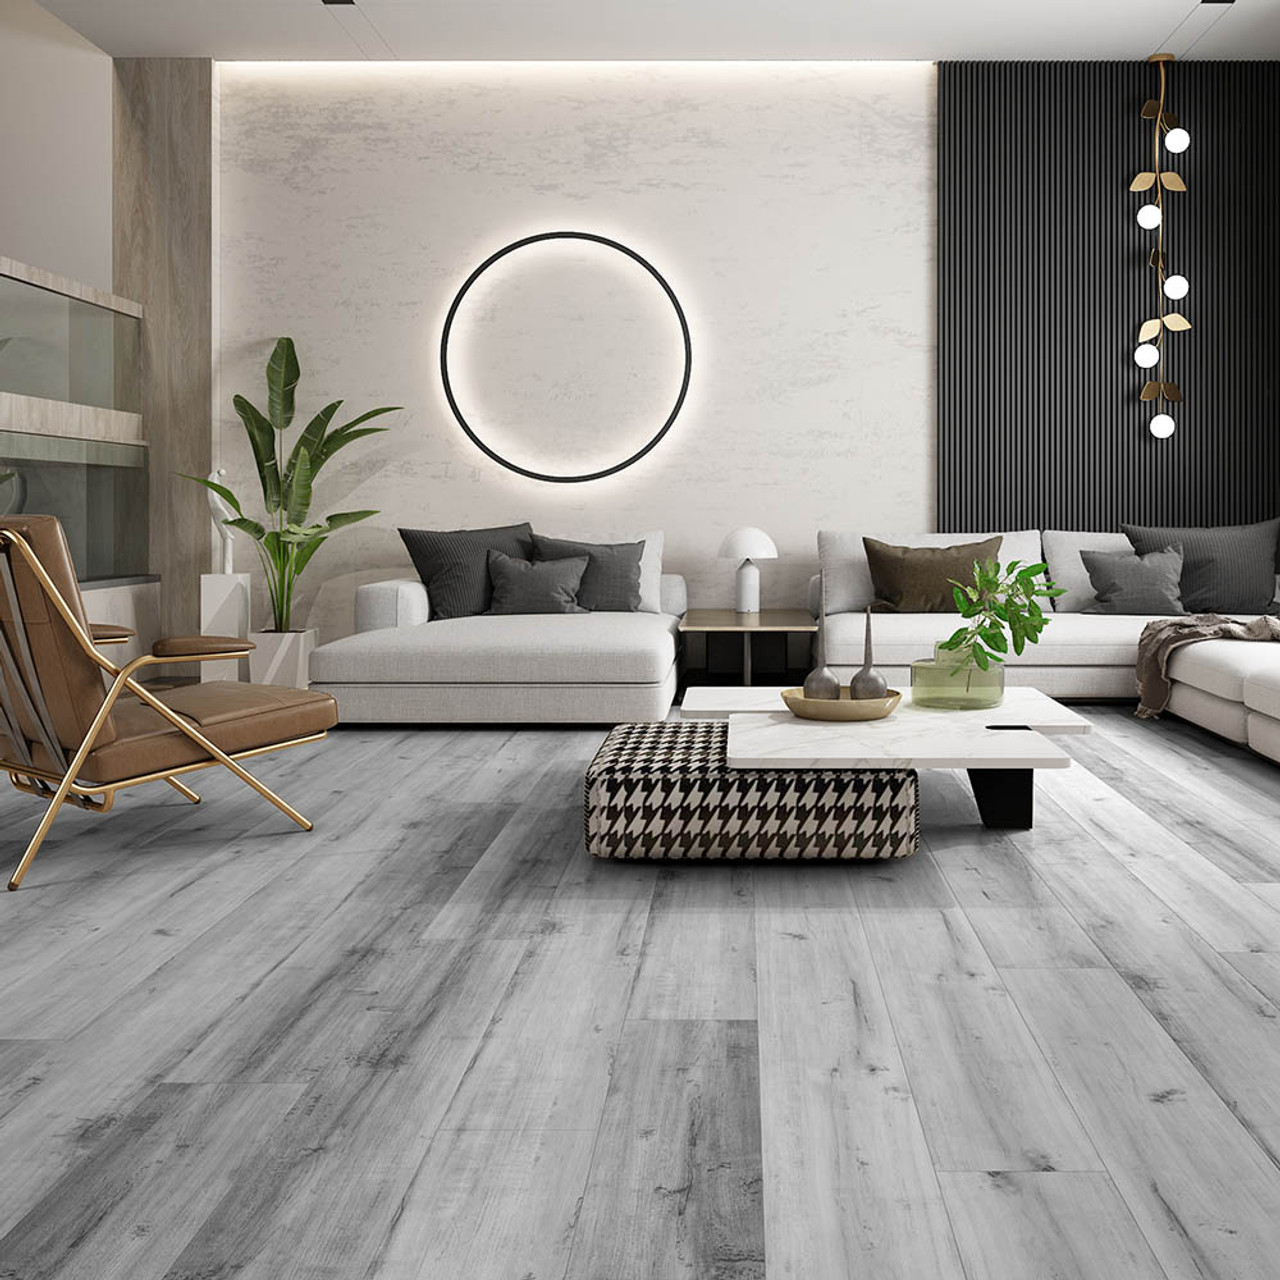 5.5mm Whistler Vinyl Click Flooring   Includes 1mm Attached Underlay   Stone Product Core (SPC)   30.14 Sq.Ft. Per Box   Sold by the Box